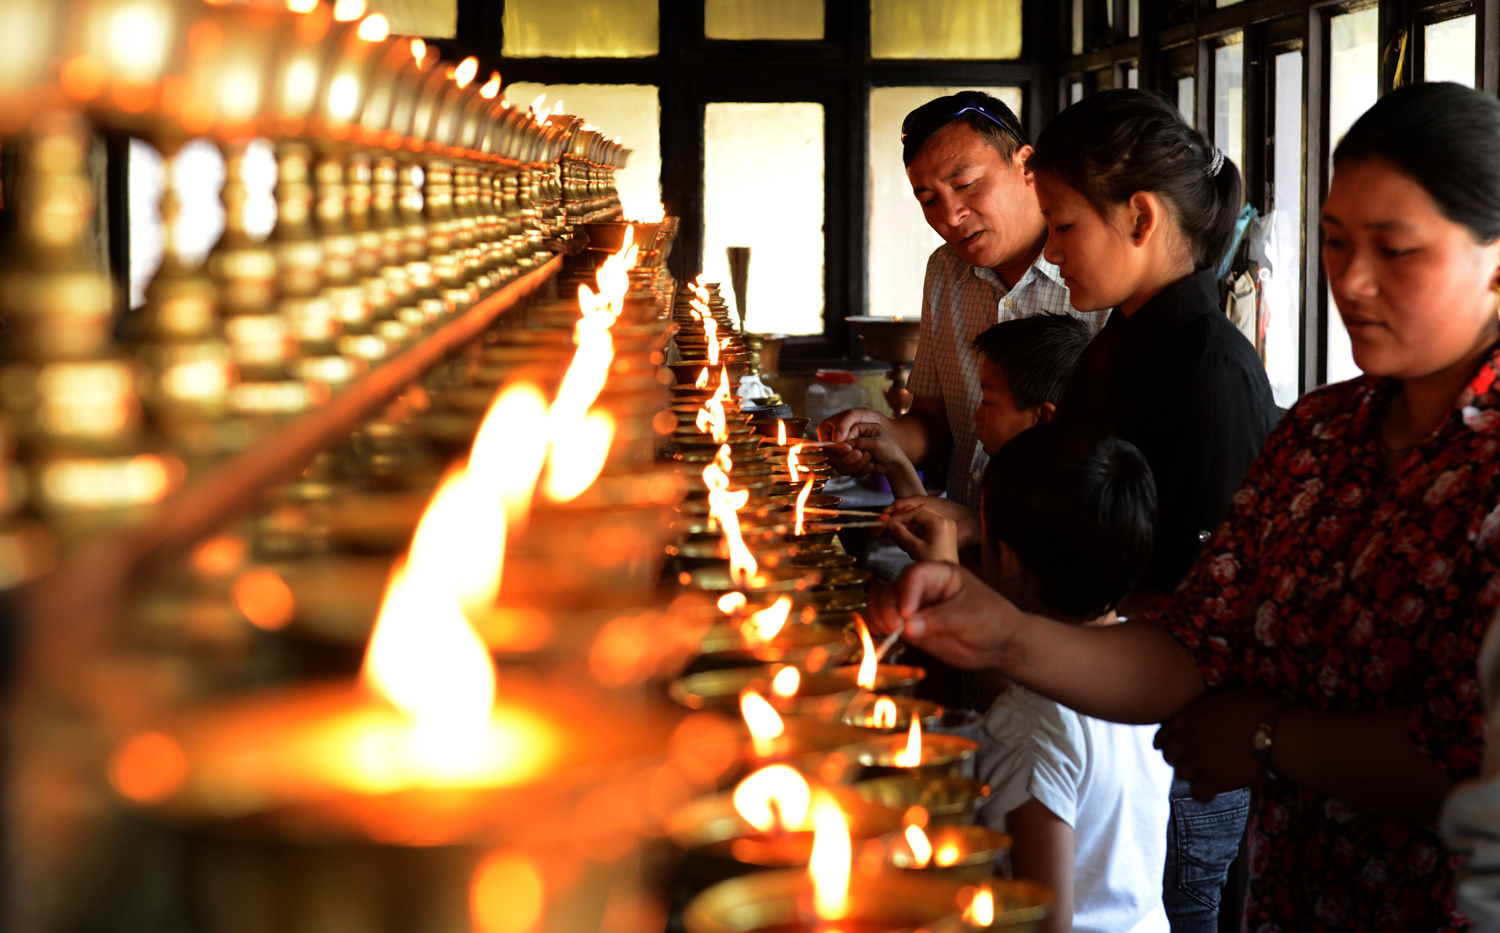 Family members of the Everest avalanche victims light oil lamps at Sherpa Monastery in Kathmandu on April 20, 2014. Nepal has called off the search for three local guides still missing, citing weather conditions